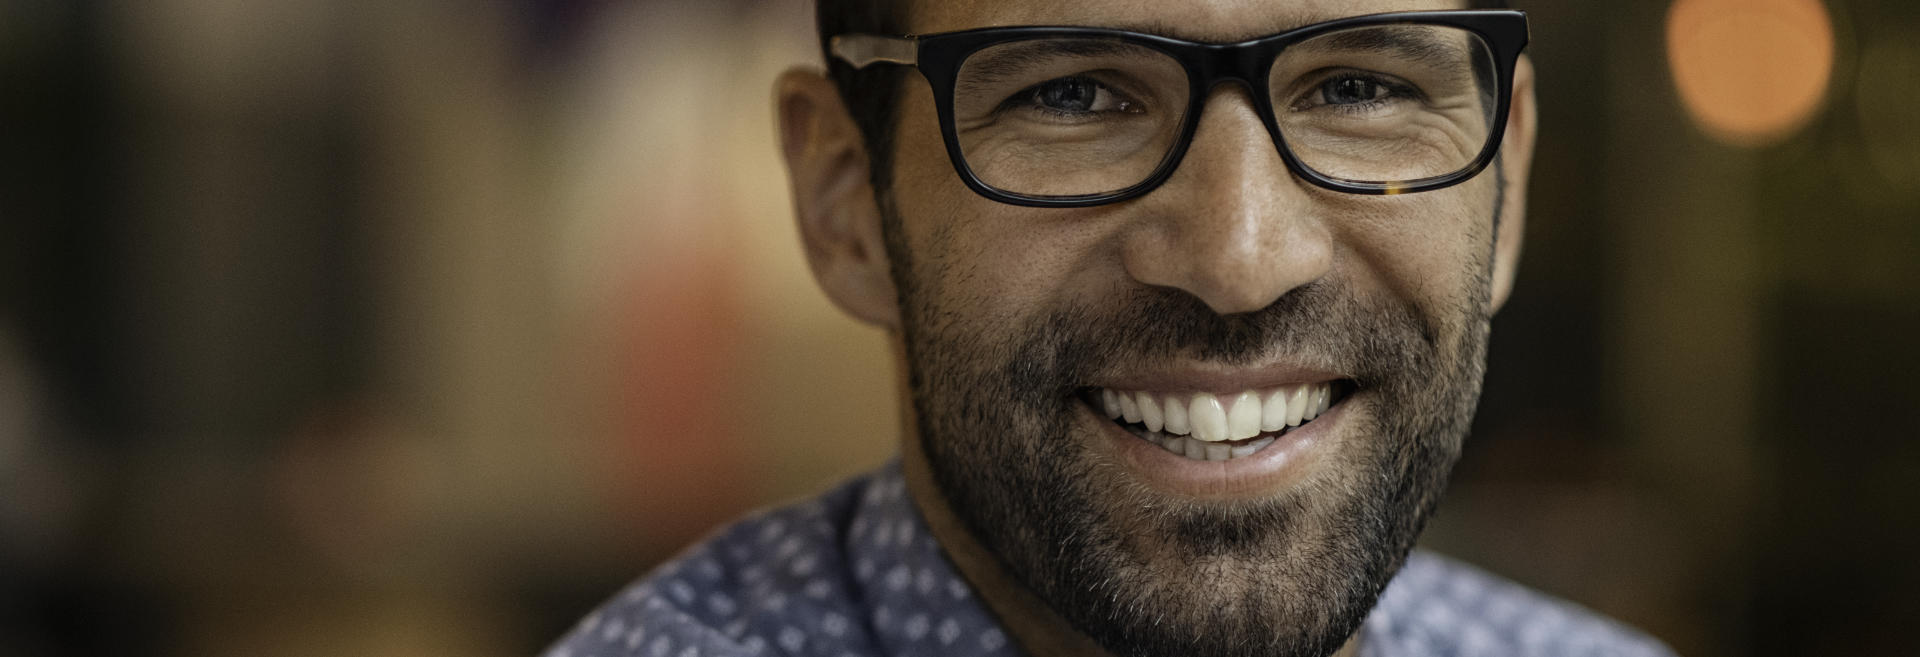 A happy middle-aged man wearing glasses showing beautiful teeth after full mouth reconstruction in his smile.